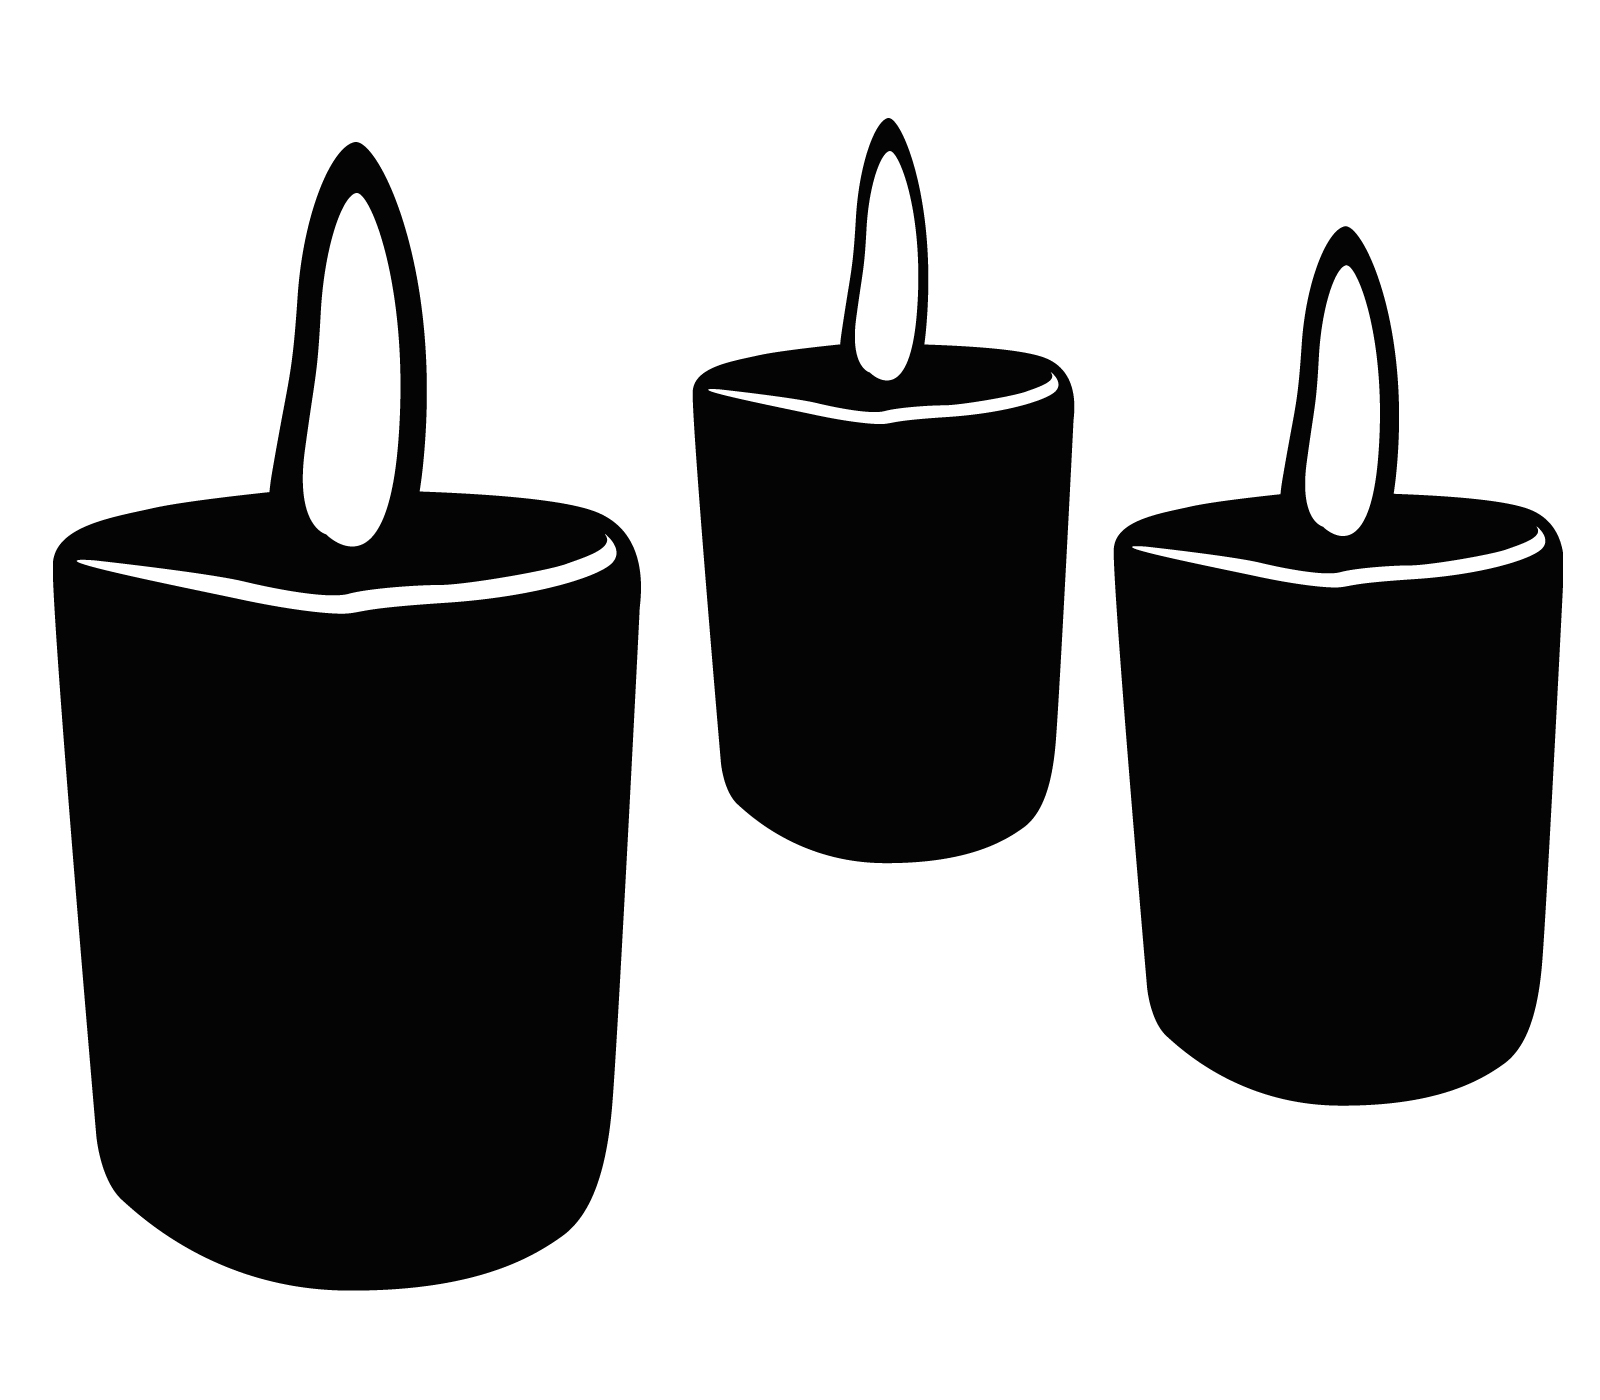 Advent clipart clipartkid freeuse stock Advent candles clipart kid - ClipartBarn freeuse stock